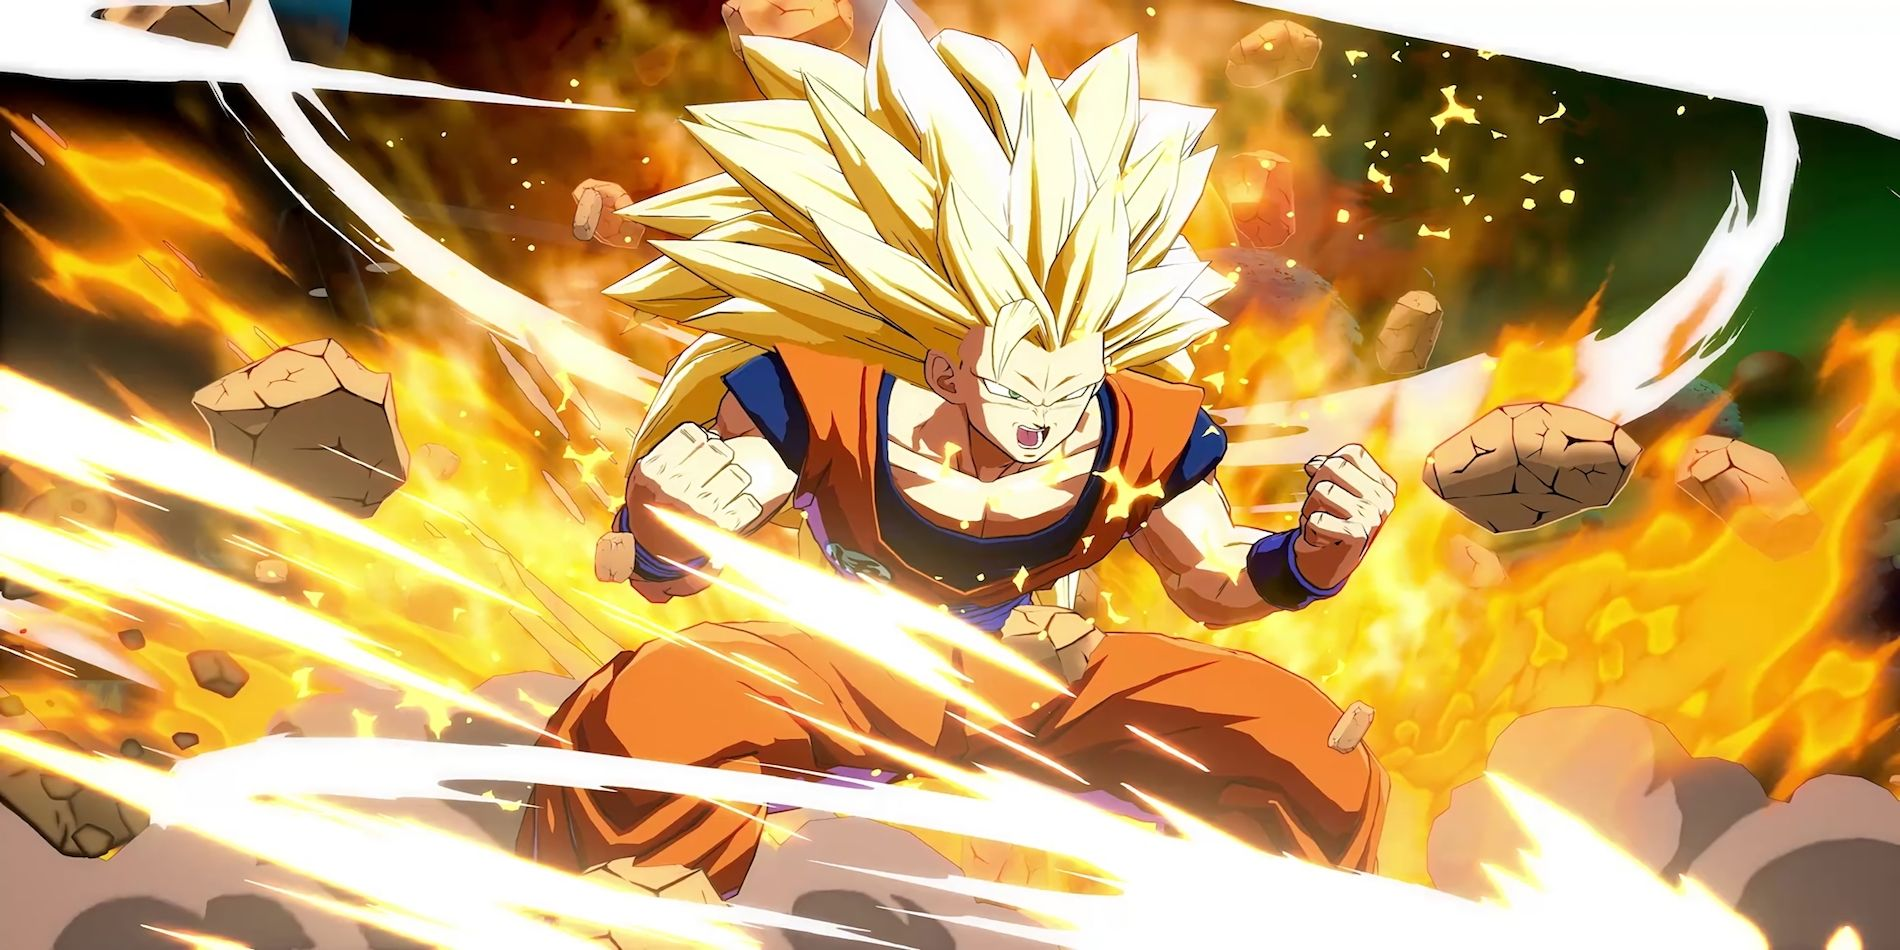 Dragon Ball: 17 Most Powerful (And 8 Weakest) Super Saiyans